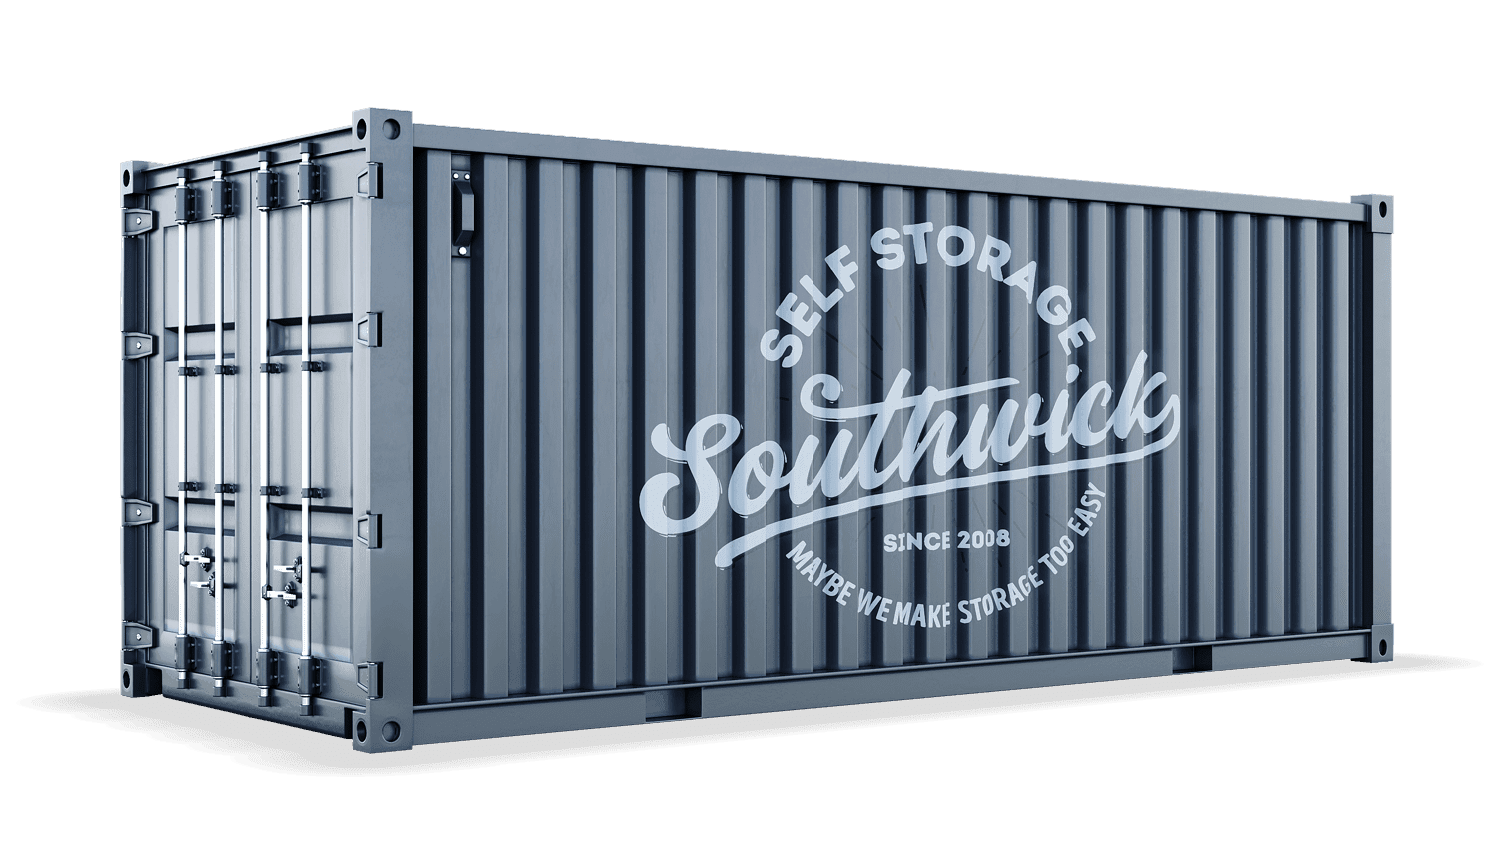 20ft container southwick storage